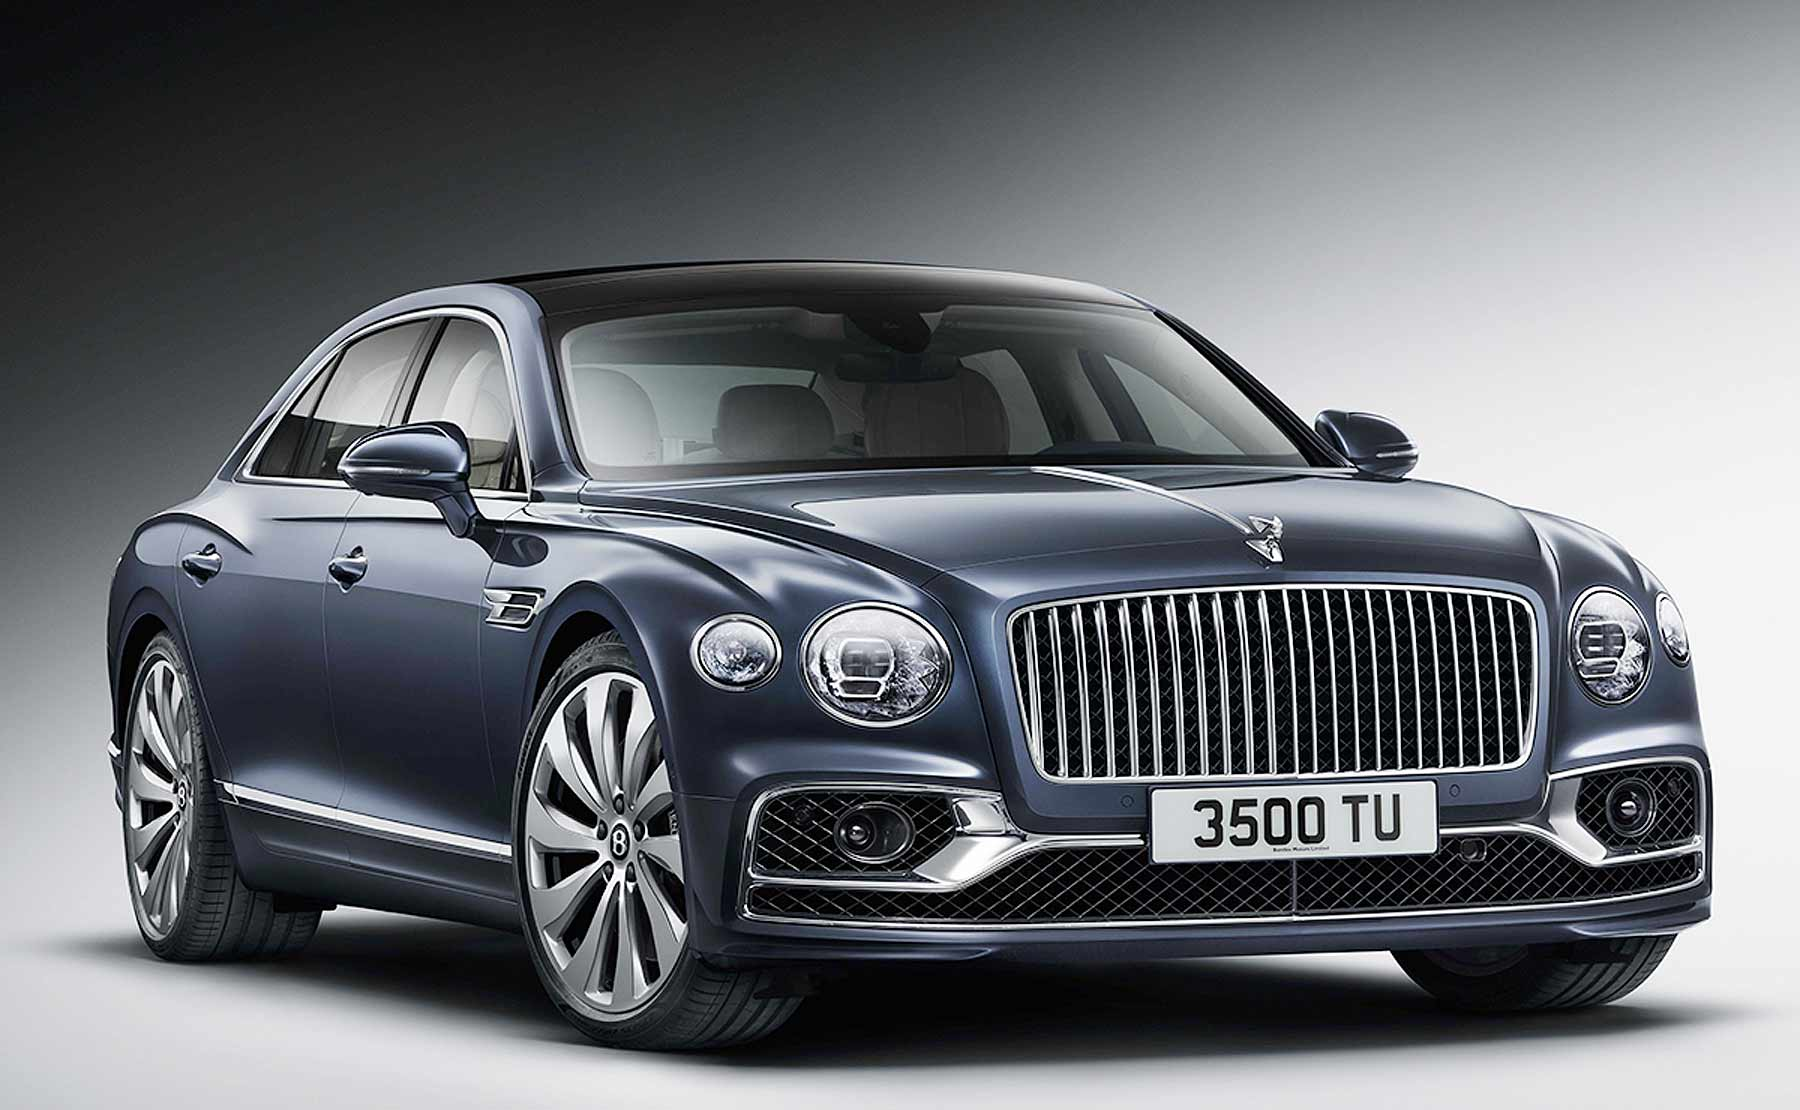 Bentley Flying Spur grows, adds tech to rival Mercedes AMG S